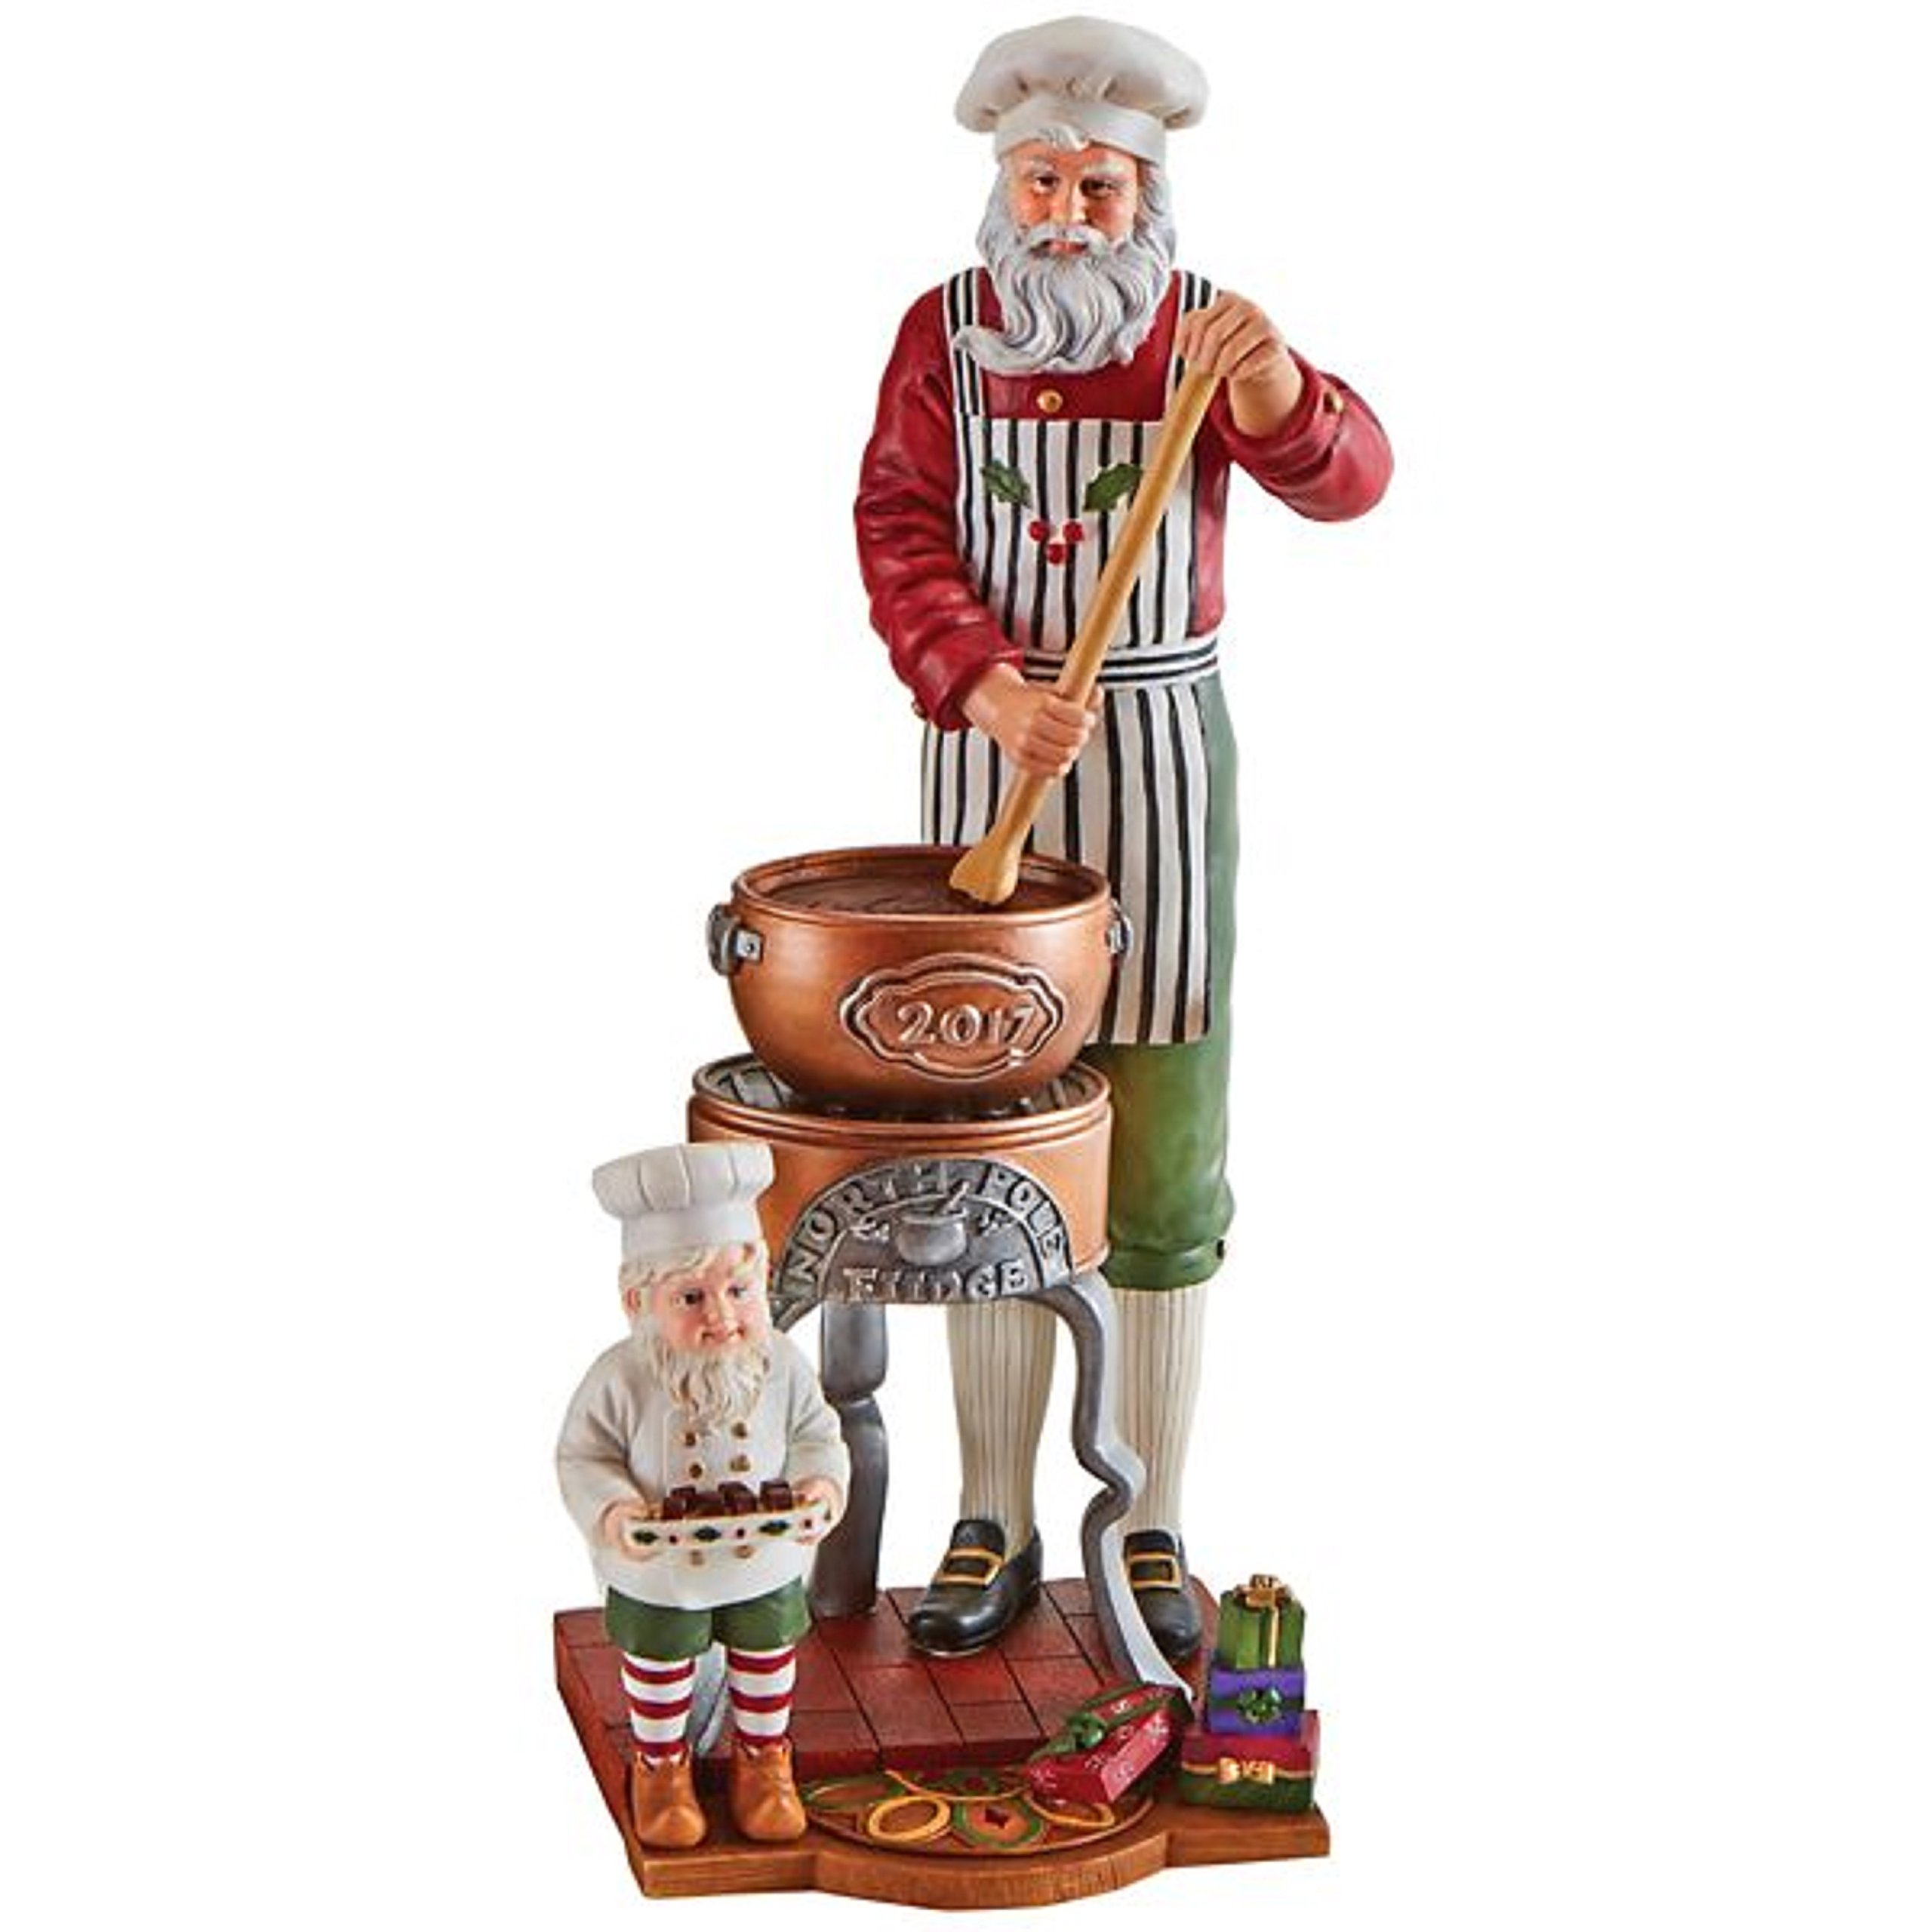 Lenox 2017 Pencil Santa Figurine Annual Santa's Fudge Shop Chocolate Boardwalk Christmas